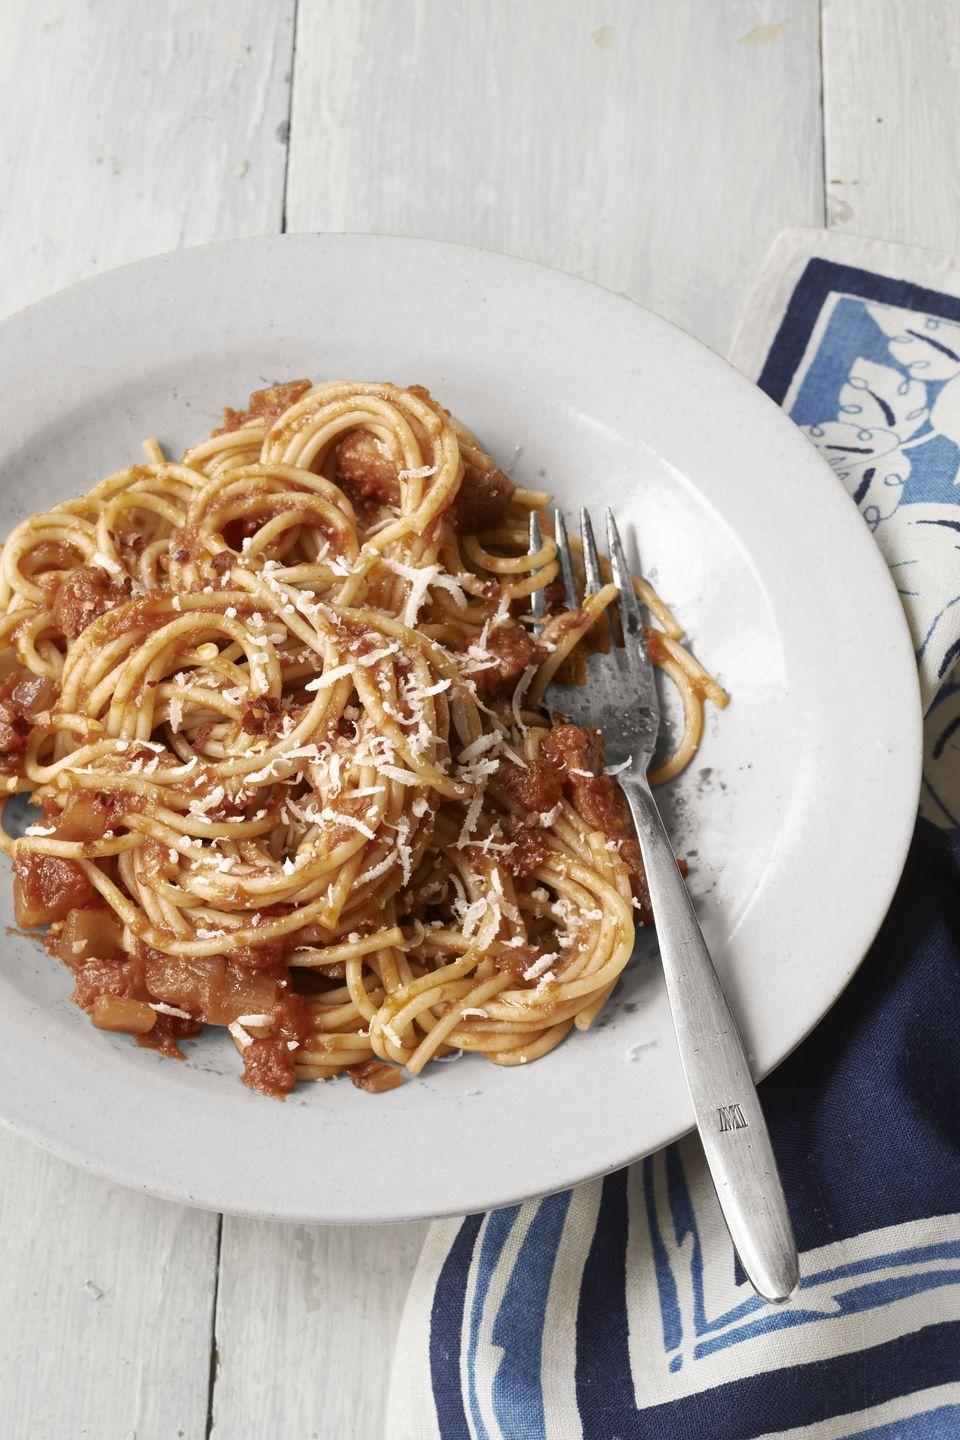 """<p>Traditional pasta gets an upgrade from Jenn Louis, chef-owner of <a href=""""http://www.lincolnpdx.com/"""" rel=""""nofollow noopener"""" target=""""_blank"""" data-ylk=""""slk:Lincoln Restaurant"""" class=""""link rapid-noclick-resp"""">Lincoln Restaurant</a> in Portland, Oregon, with the addition of smoky, salty bacon and zesty red onion.</p><p><strong><a href=""""https://www.countryliving.com/food-drinks/recipes/a4071/spaghetti-red-onion-bacon-recipe-clv1012/"""" rel=""""nofollow noopener"""" target=""""_blank"""" data-ylk=""""slk:Get the recipe."""" class=""""link rapid-noclick-resp"""">Get the recipe.</a></strong></p>"""